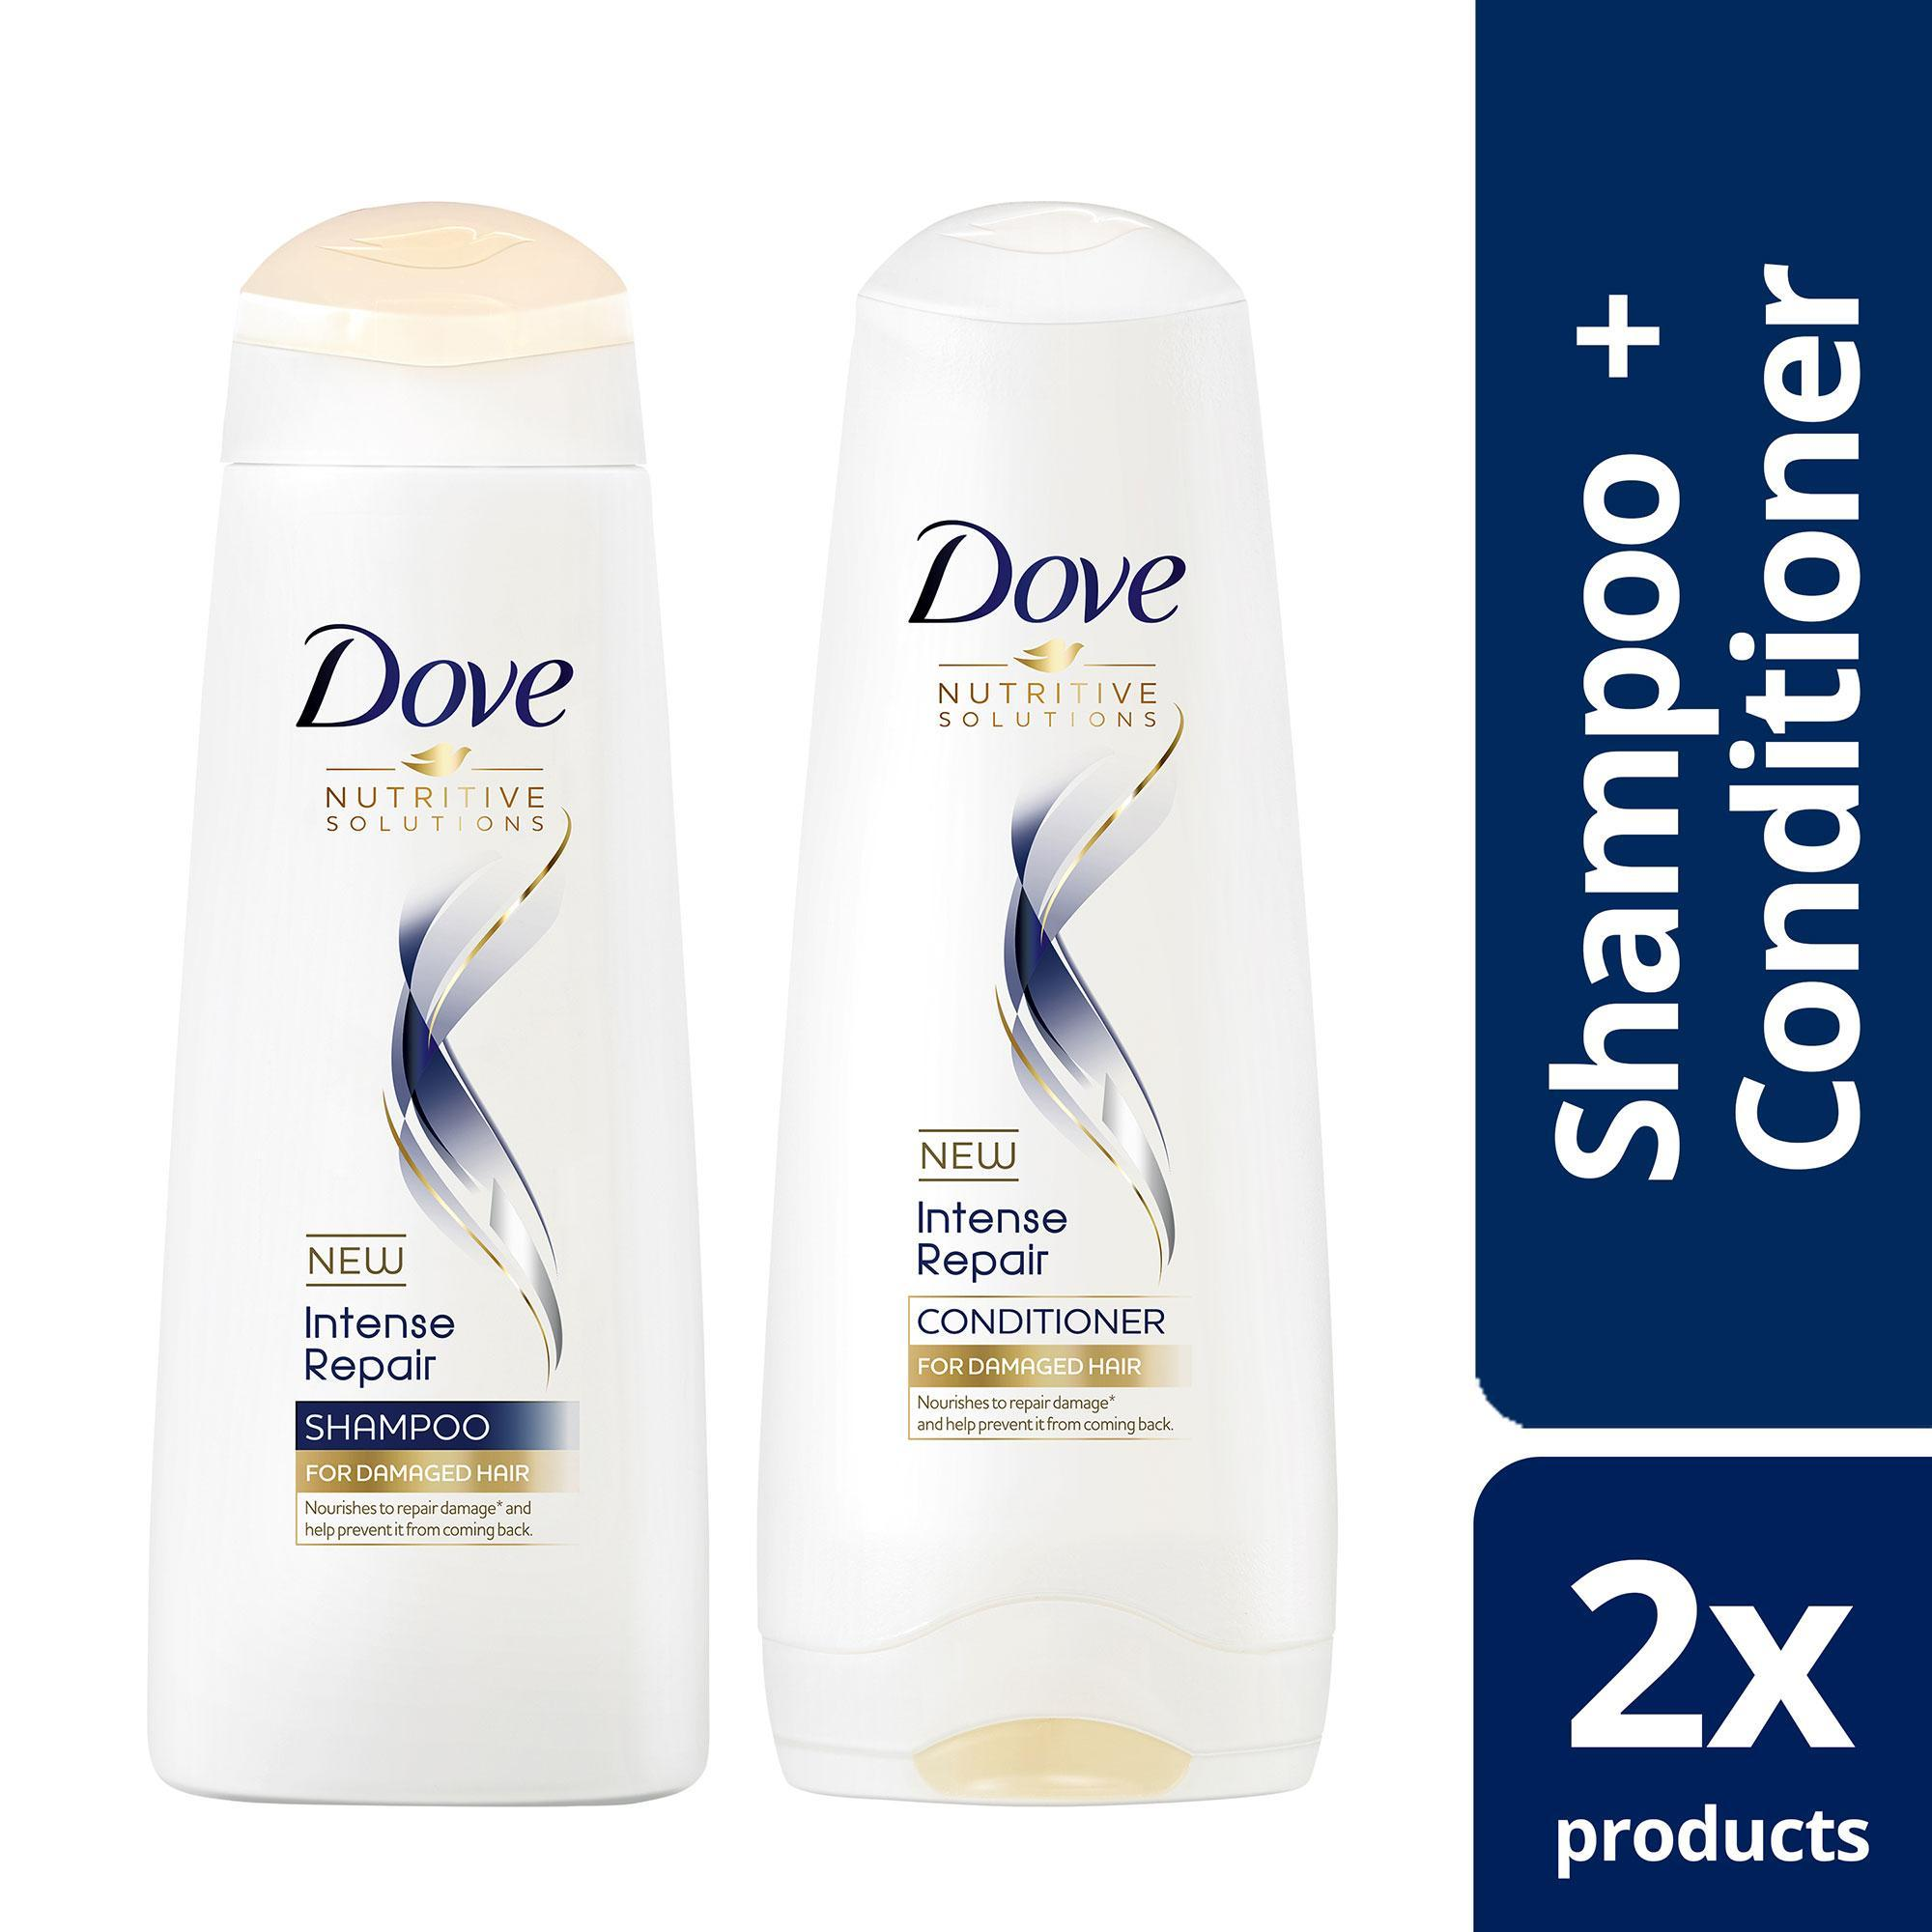 Dove Philippines Price List Soap Shampoo Deodorant Clear Complete Soft Care Men 170 Ml Intense Repair 170ml And Hair Conditioner 180ml Promo Pack